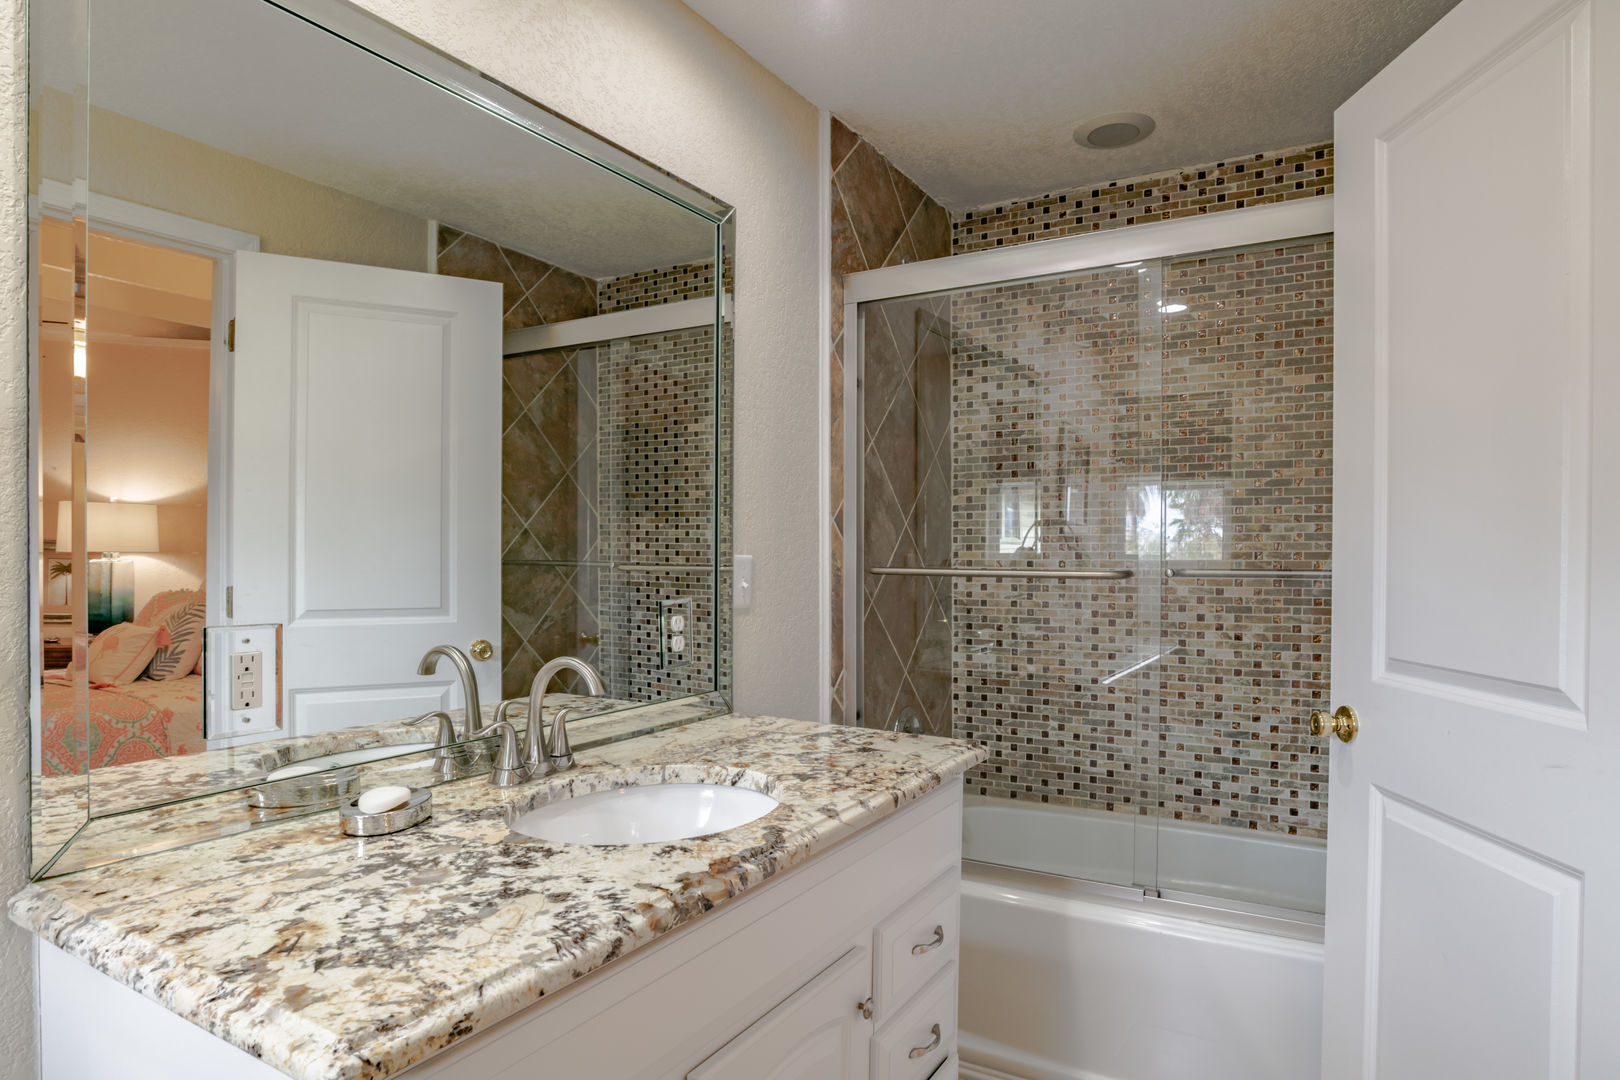 Bath attached to Bedroom 2 with Shower/Tub combo